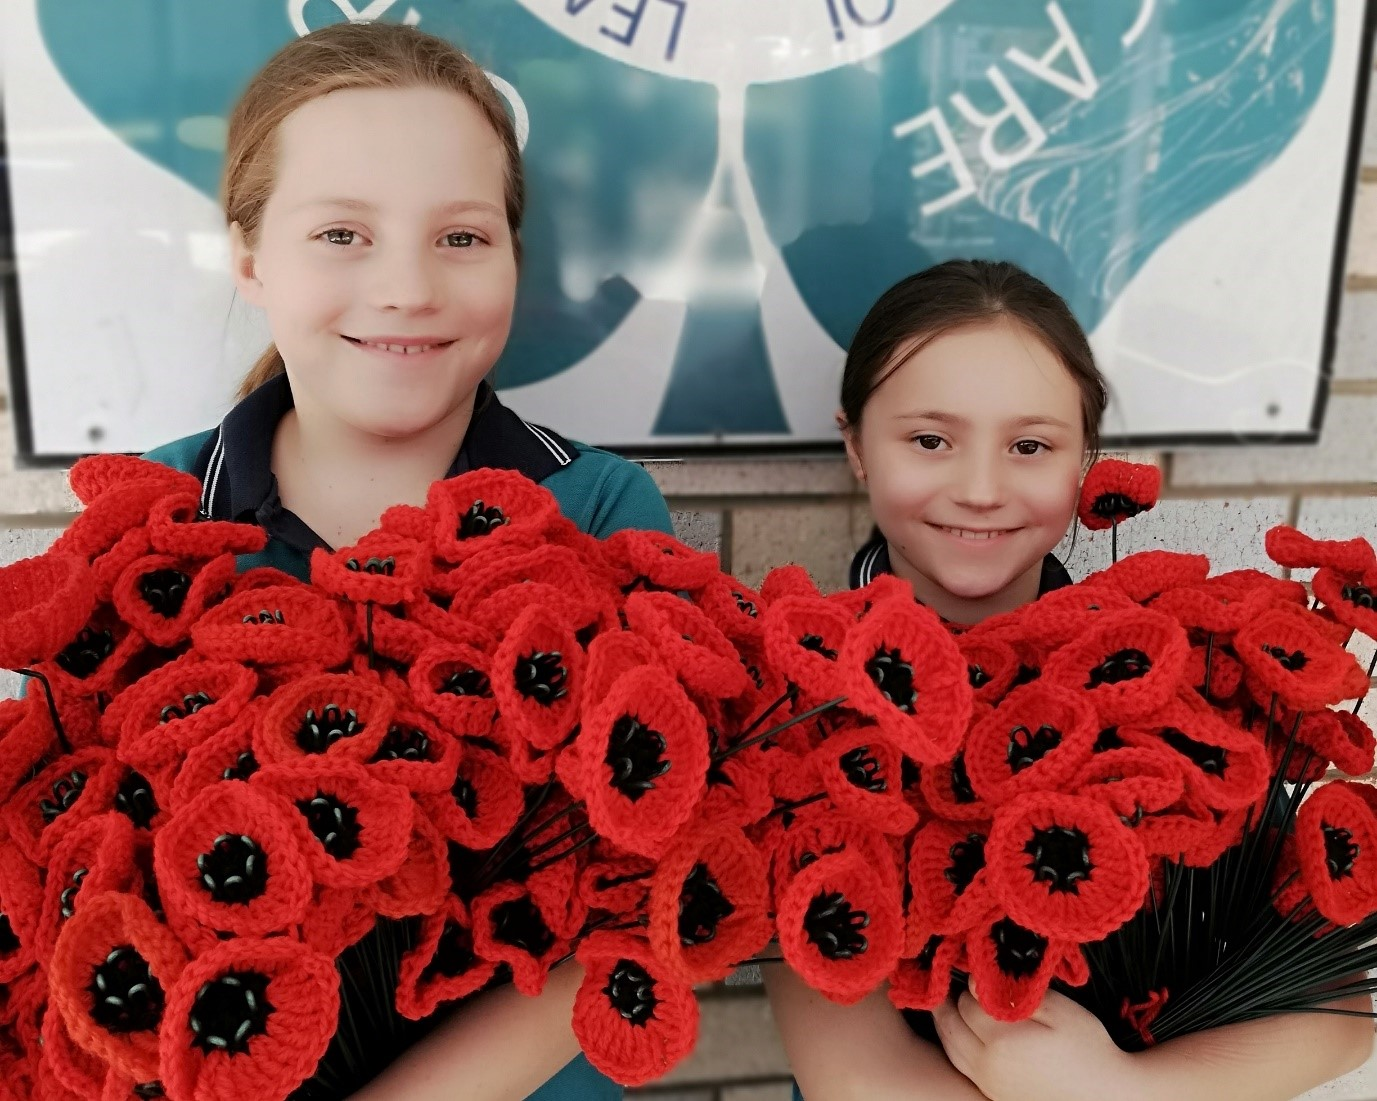 Noosaville State School's Garden of Poppies for Remembrance Day